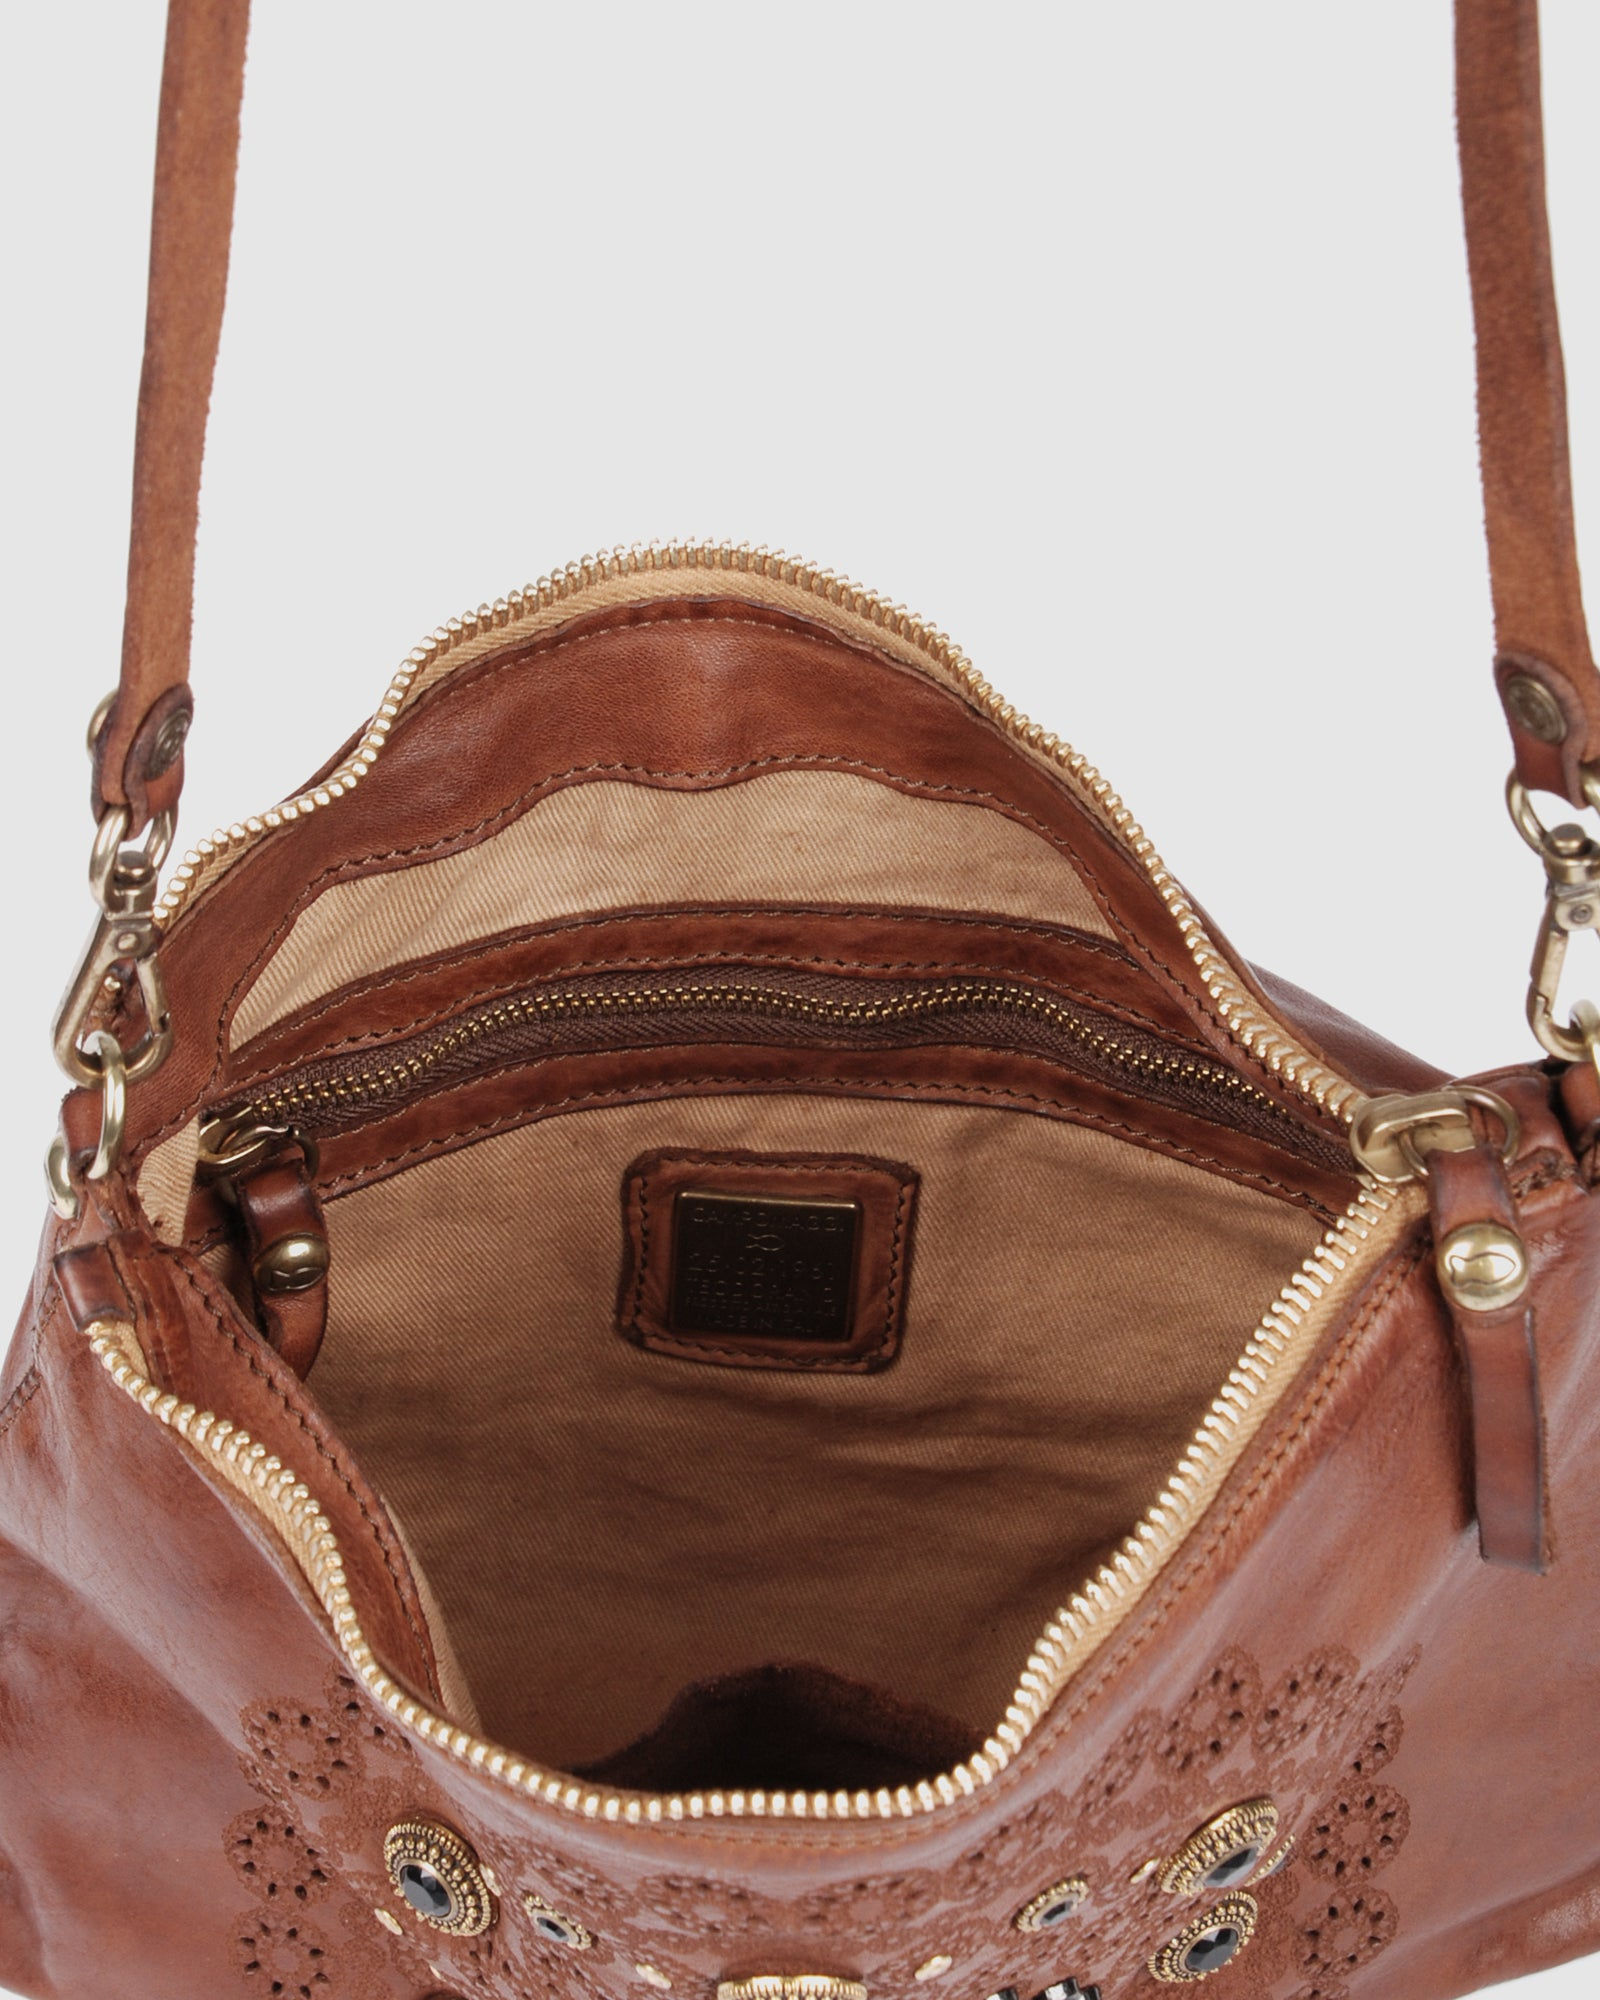 CAMPOMAGGI TANGIER CROSS BODY BAG COGNAC LEATHER